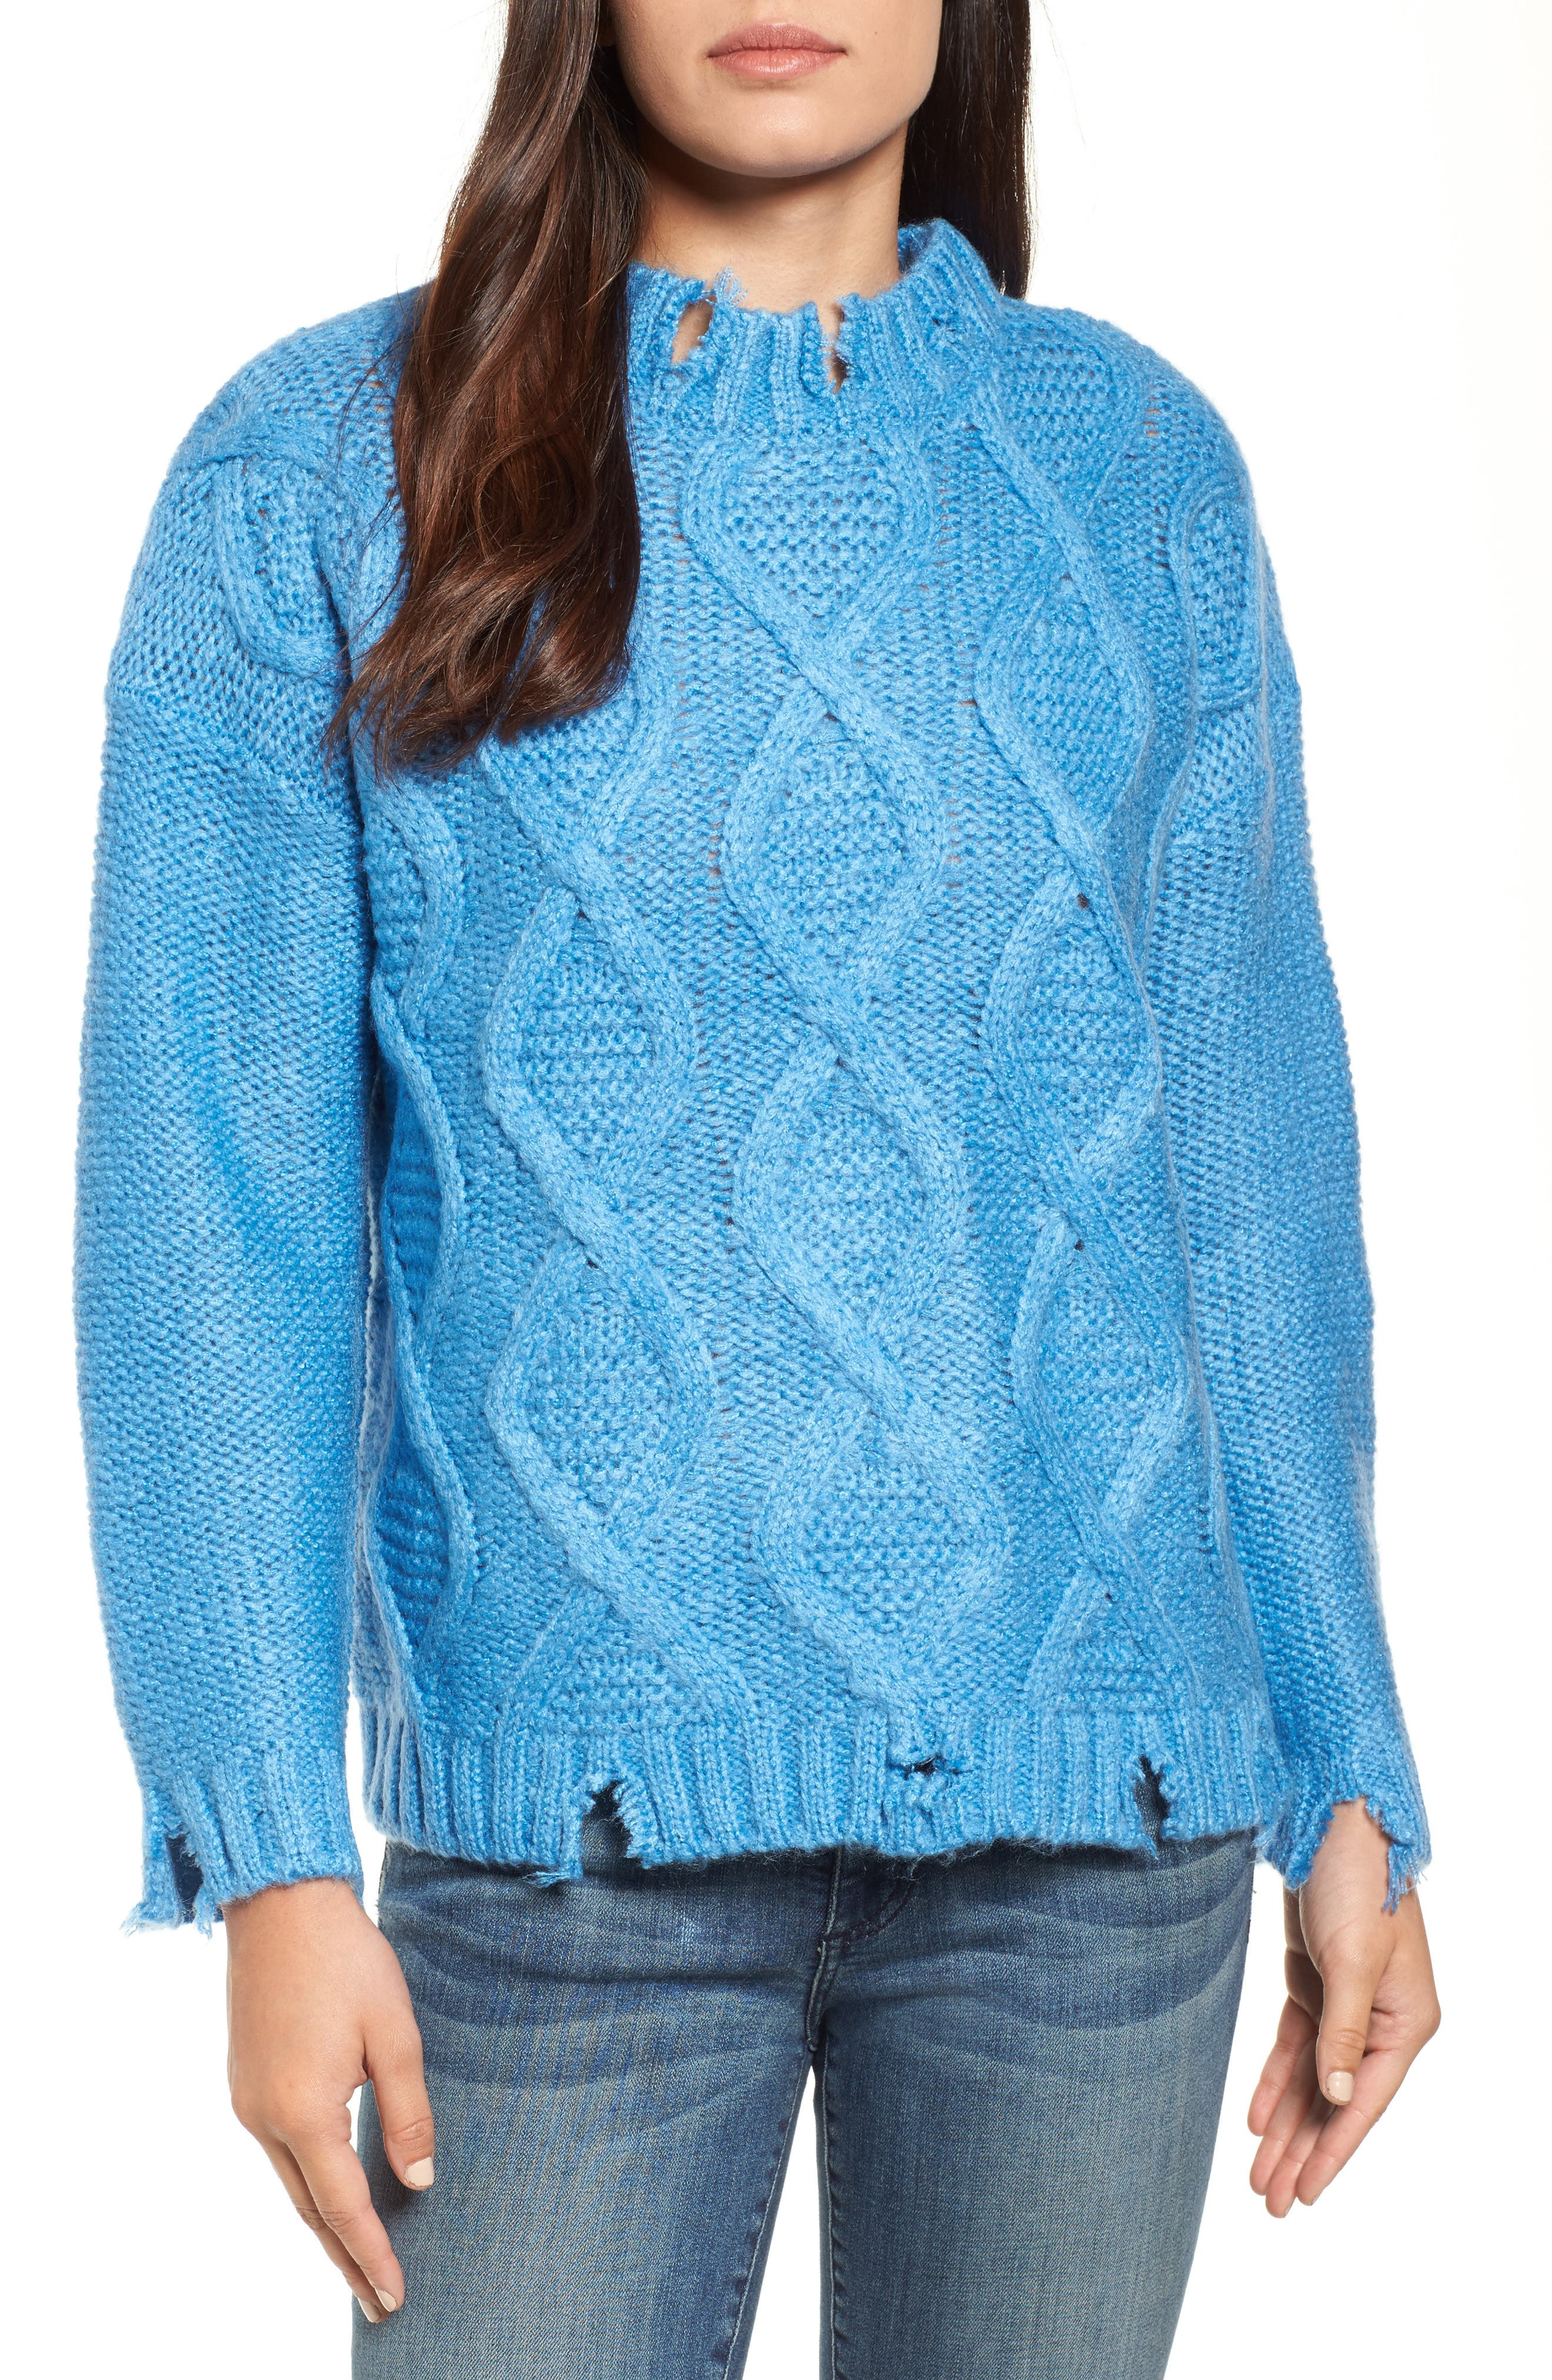 Destroyed Cable Knit Sweater,                             Main thumbnail 1, color,                             Turquoise